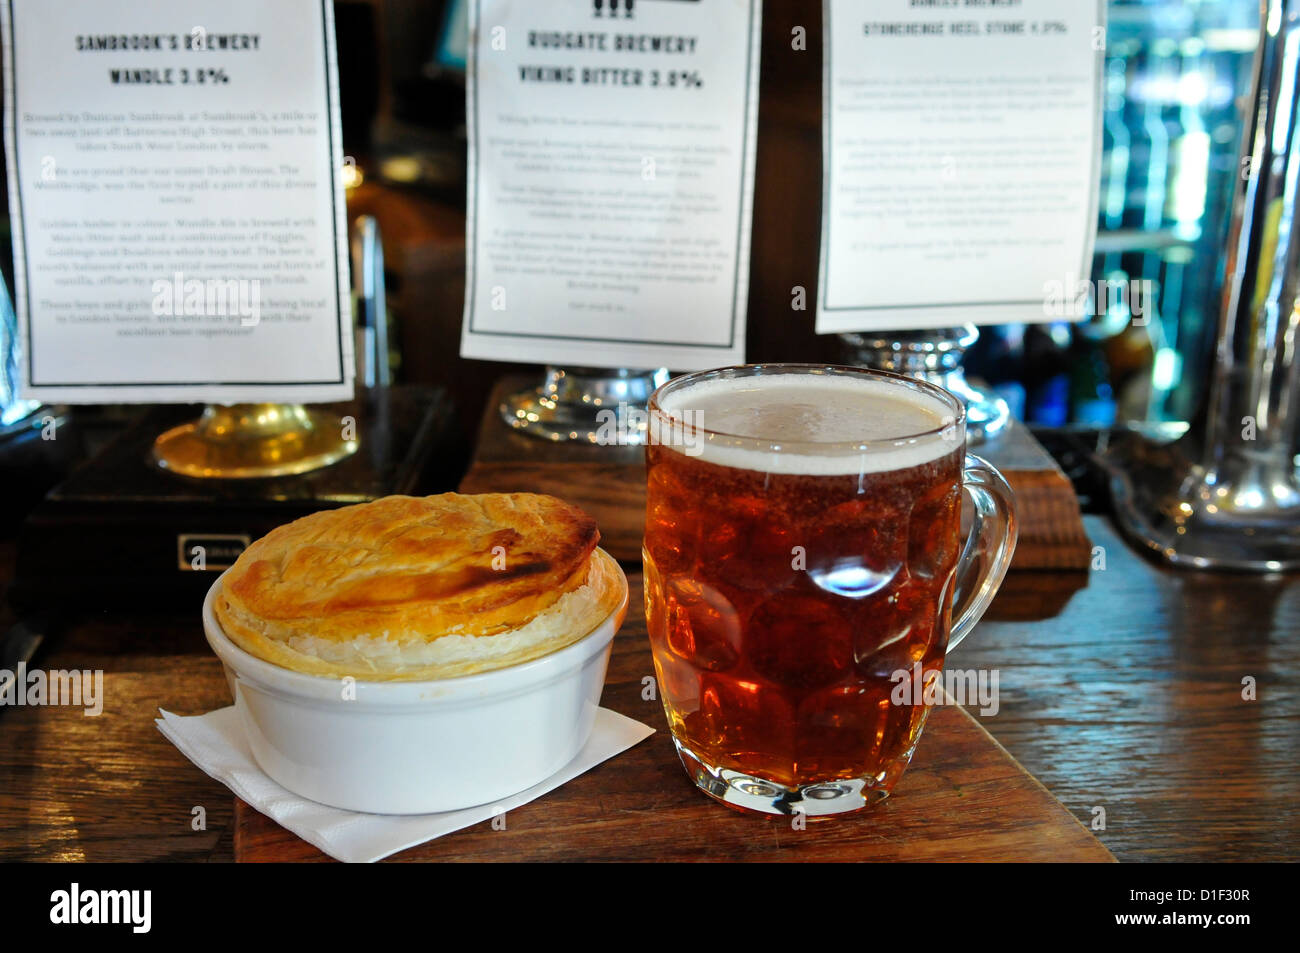 Pint of Ale and a Pie at The Draft House Pub, Northcote Road, Clapham, London, England, SW11 - Stock Image